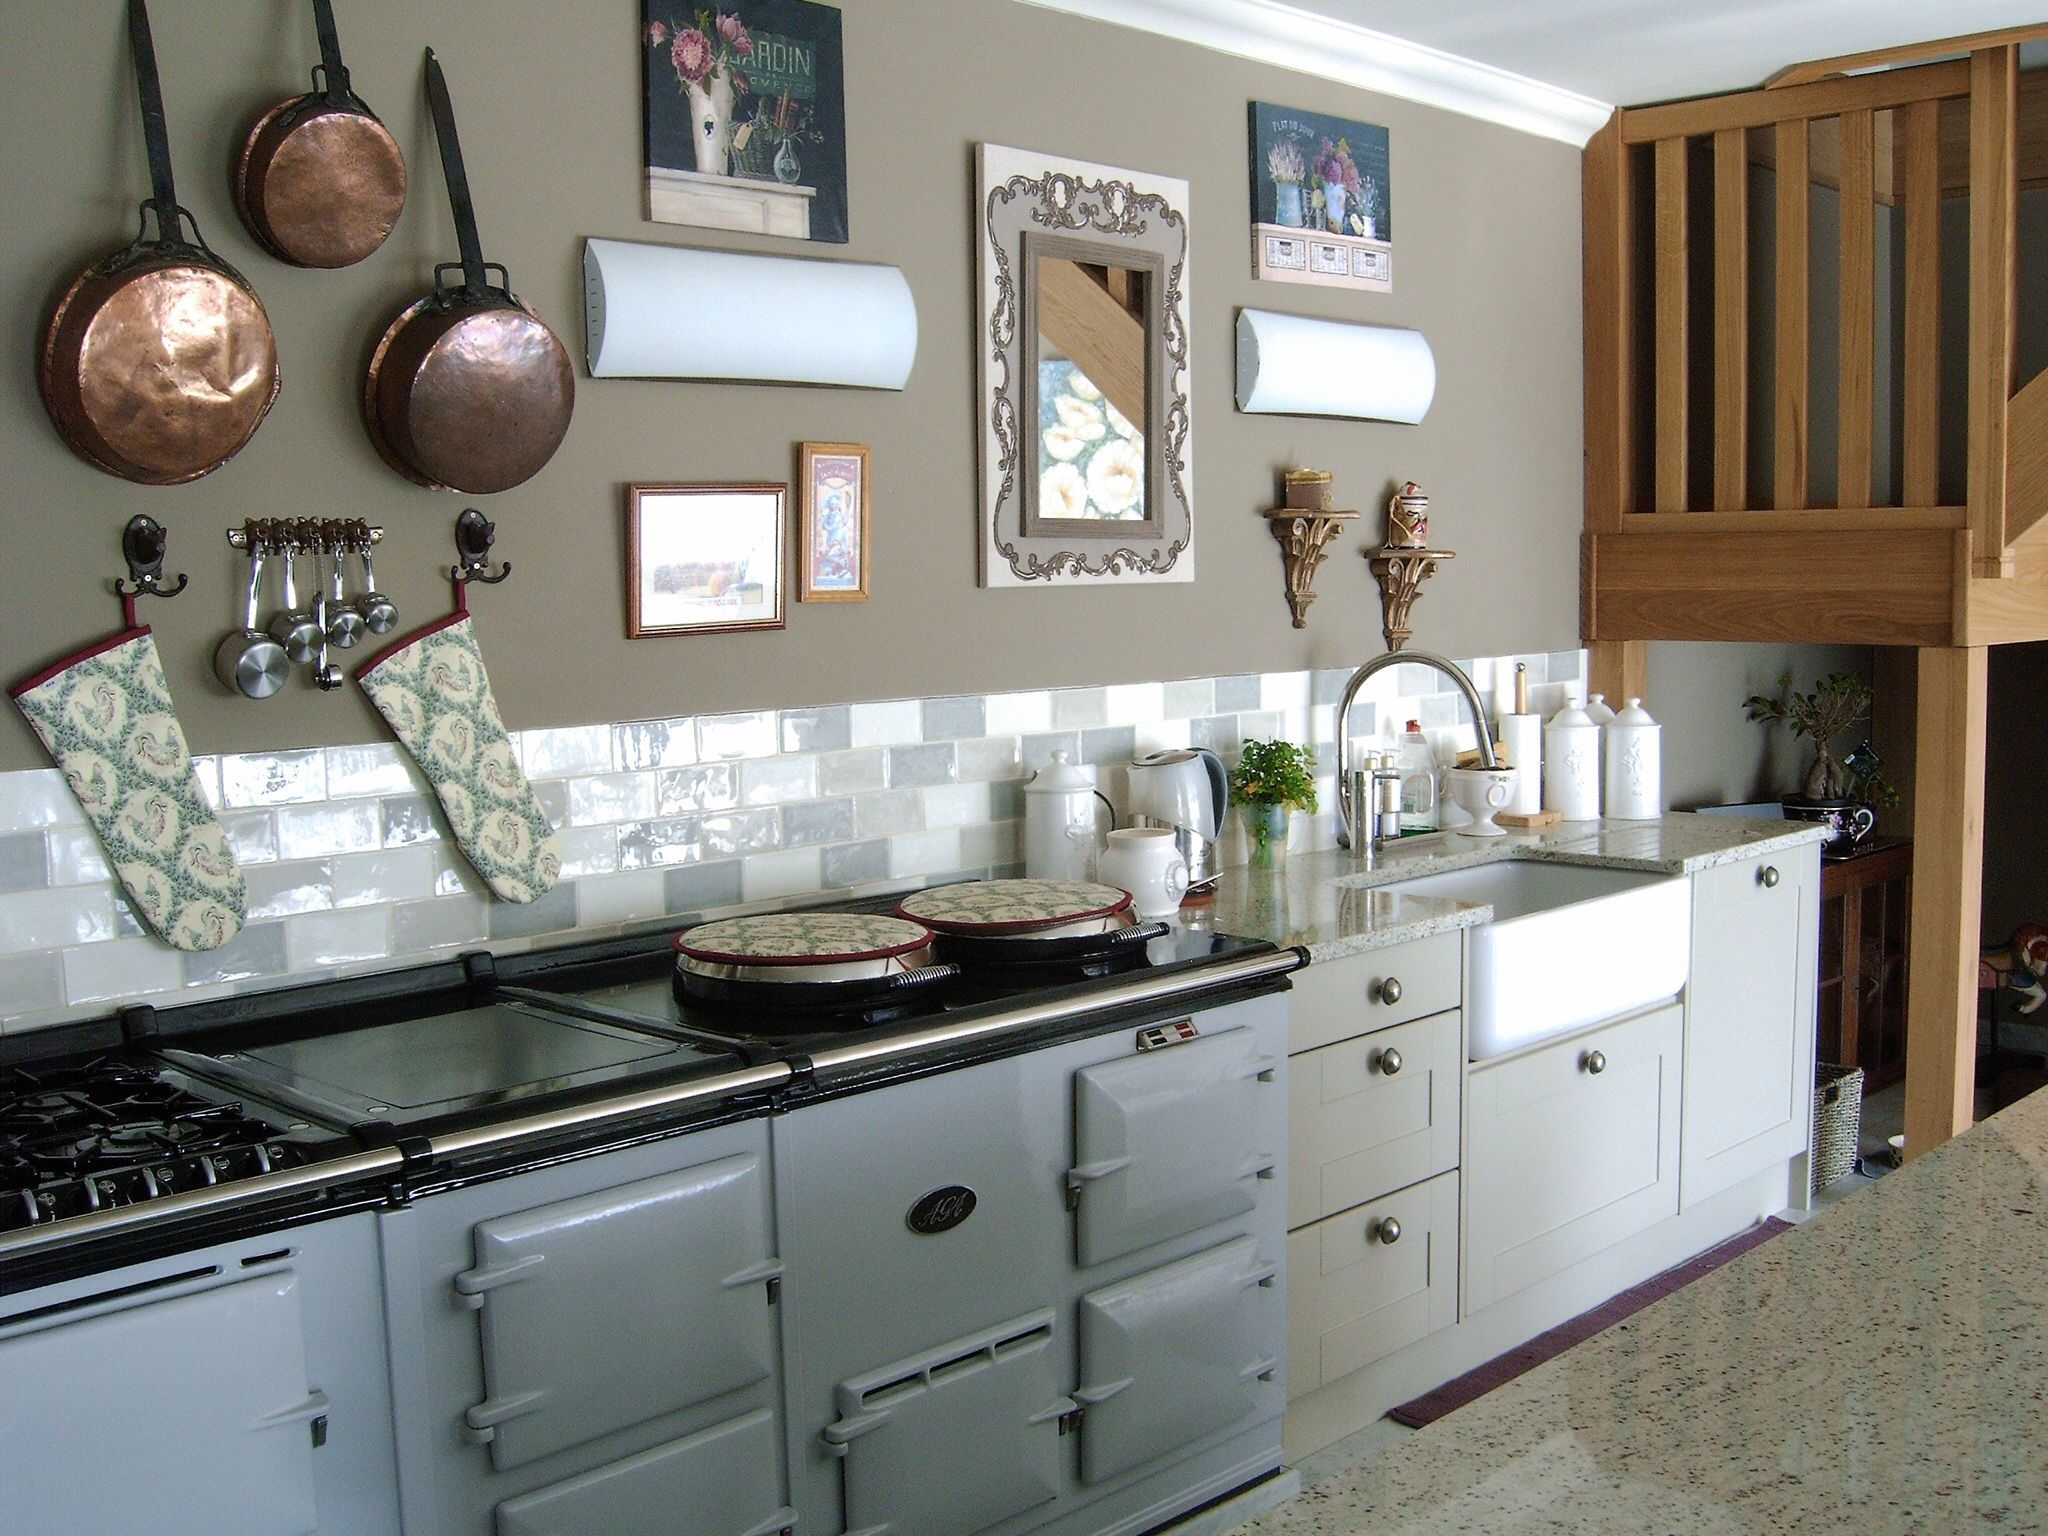 Marble Floor In Kitchen French Kitchen Large Aga In Pearl Ashes Carrara Marble Floors